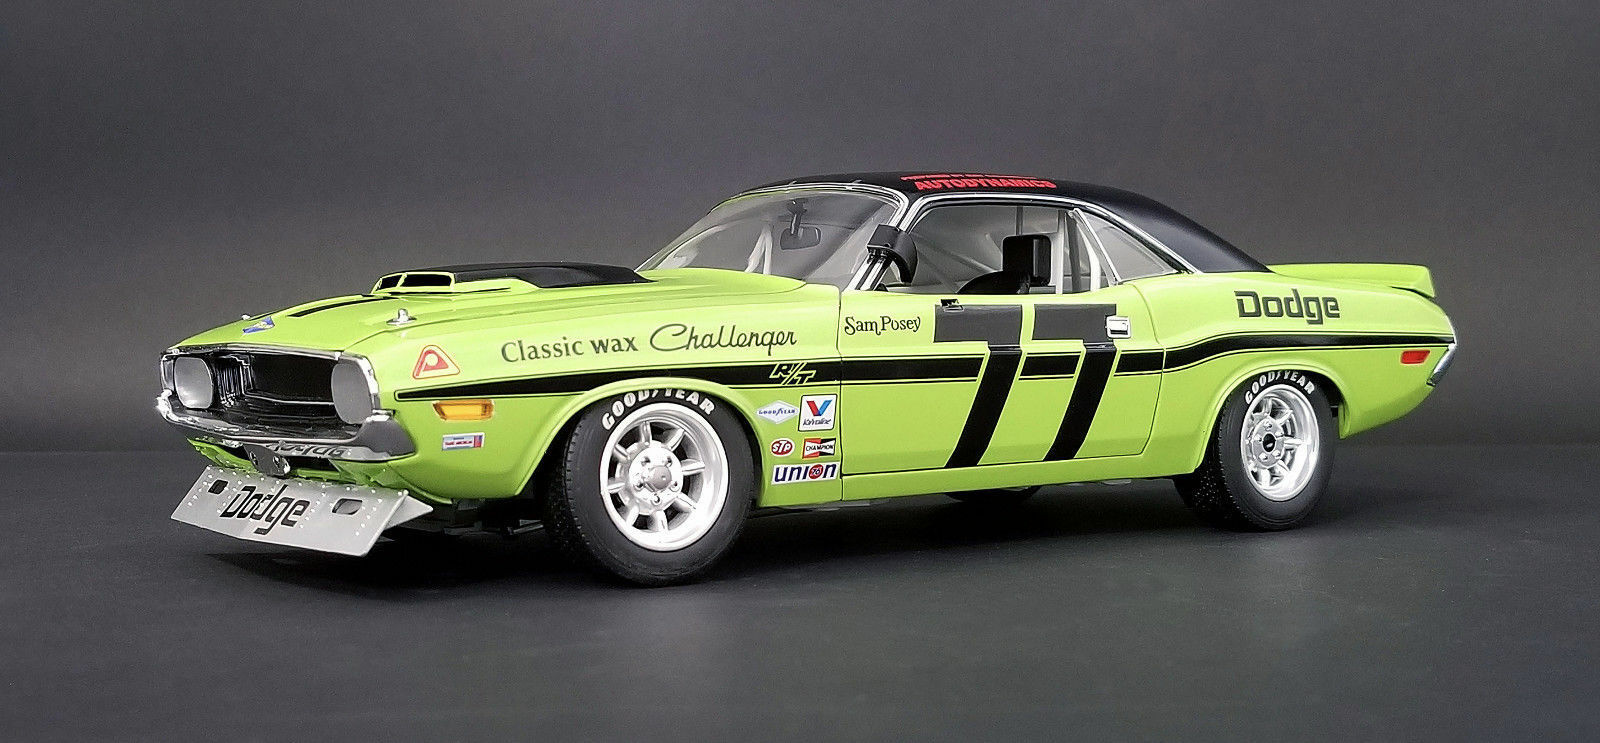 ACME 1970 Dodge Challenger Sam Posey Trans AM 1 18  A1806001 New ItemNICE